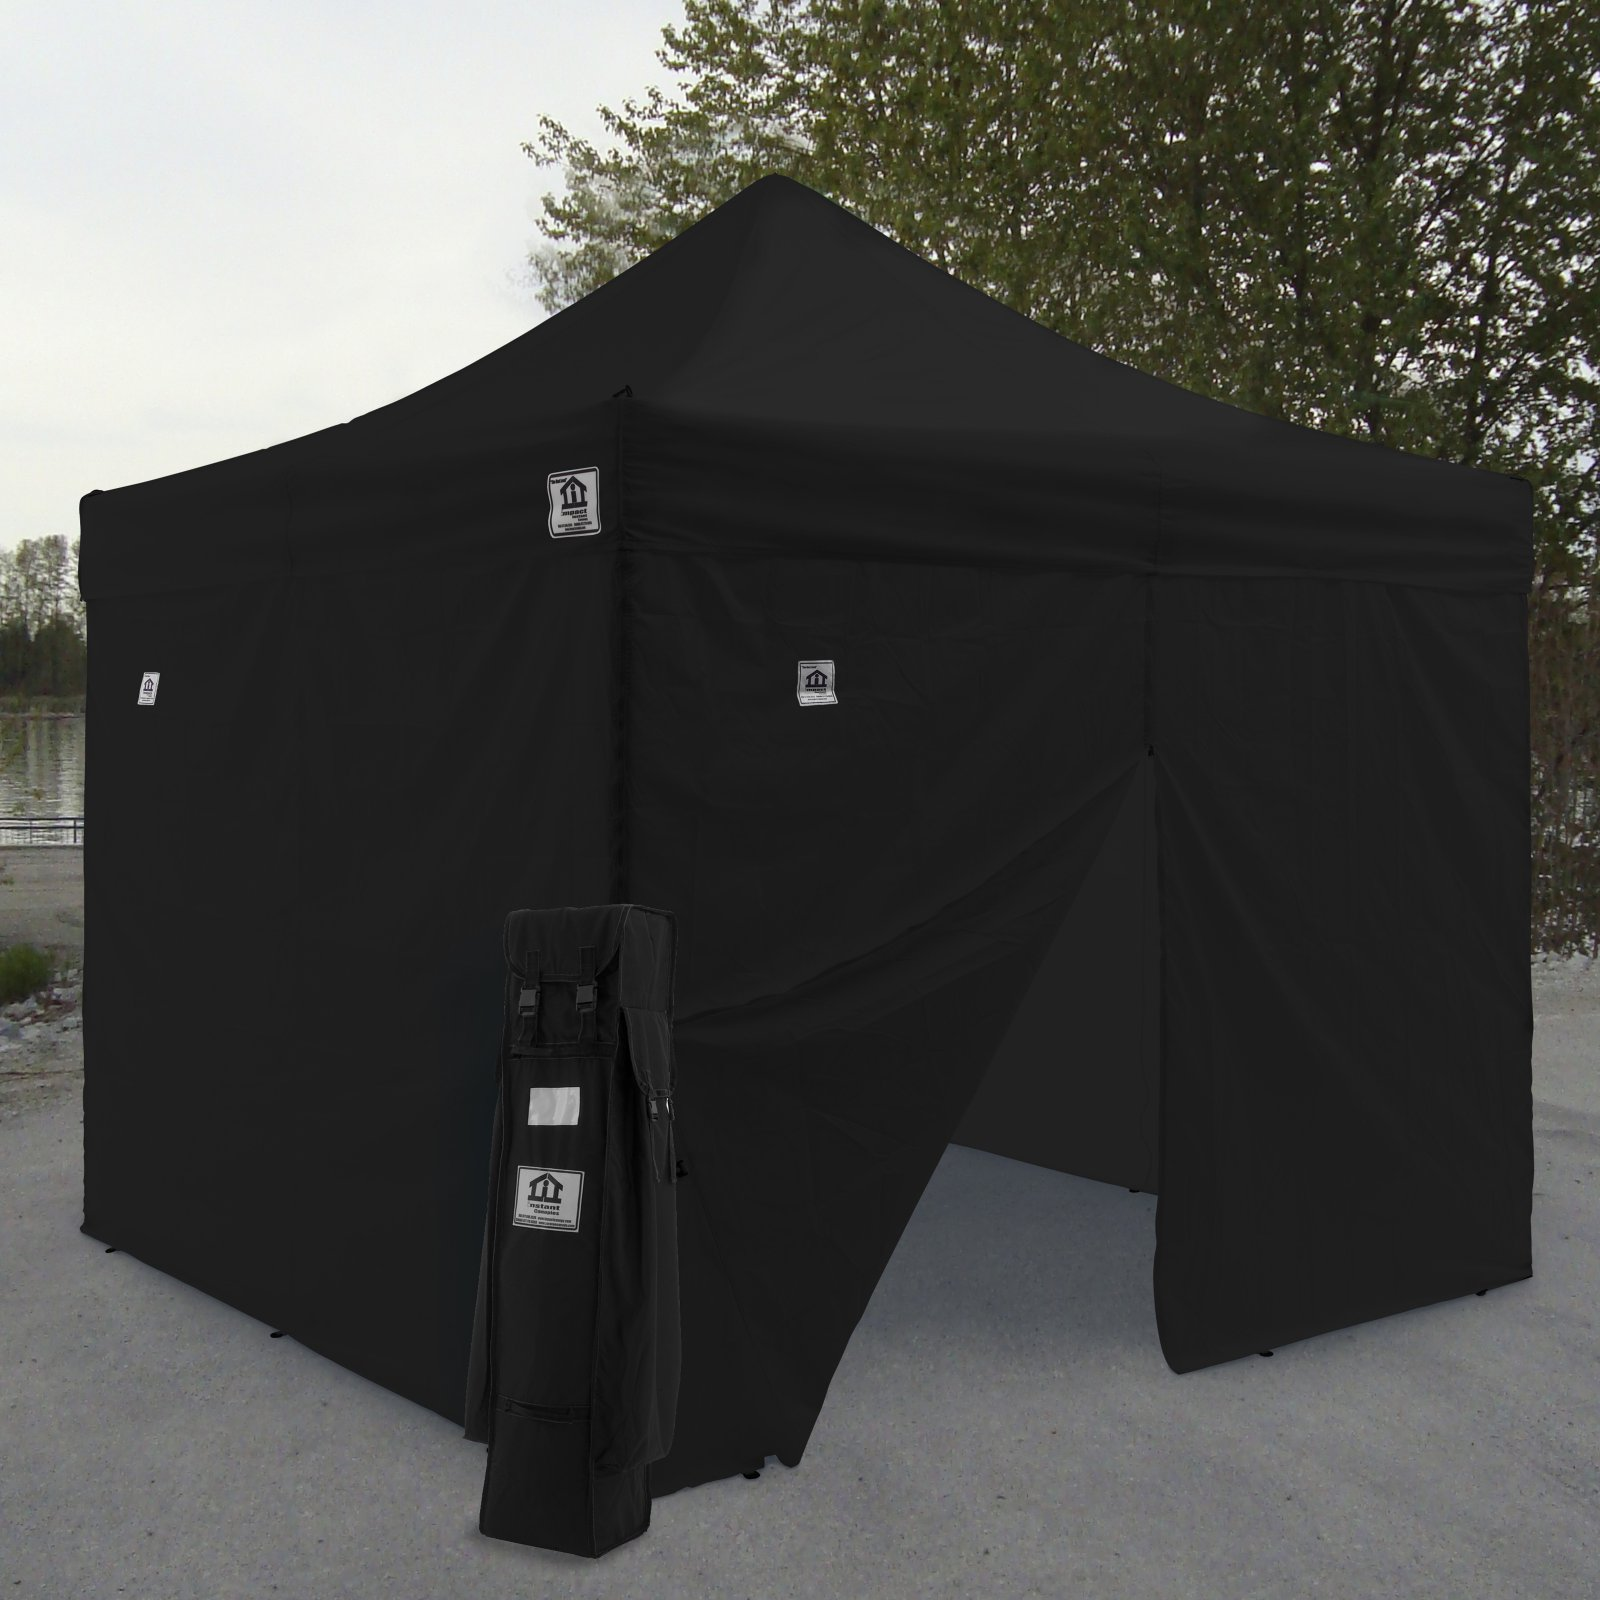 Impact Canopy AOL 10x10 ft. Ez Pop Up Canopy Tent Instant Canopy Aluminum with Wheeled Roller Bag and Sidewalls - Walmart.com & Impact Canopy AOL 10x10 ft. Ez Pop Up Canopy Tent Instant Canopy ...